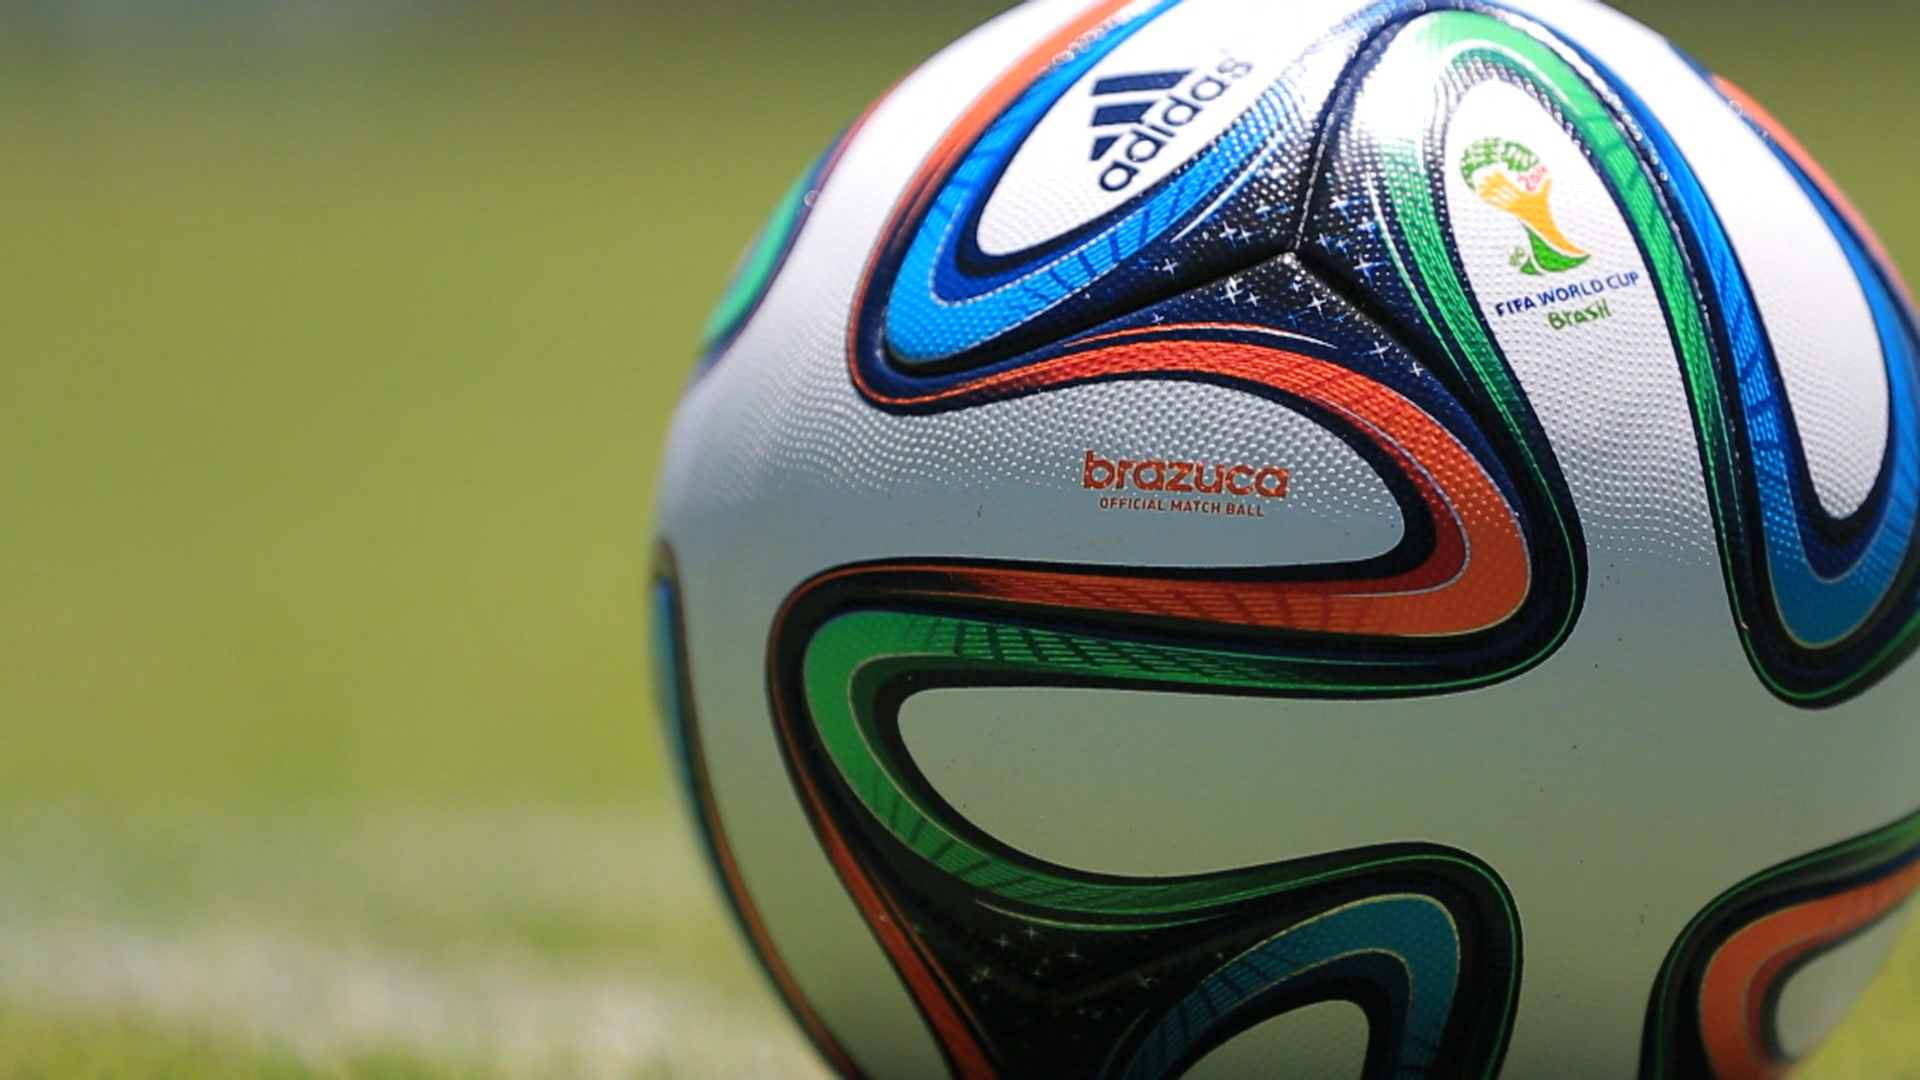 Anatomy of a World Cup Soccer Ball